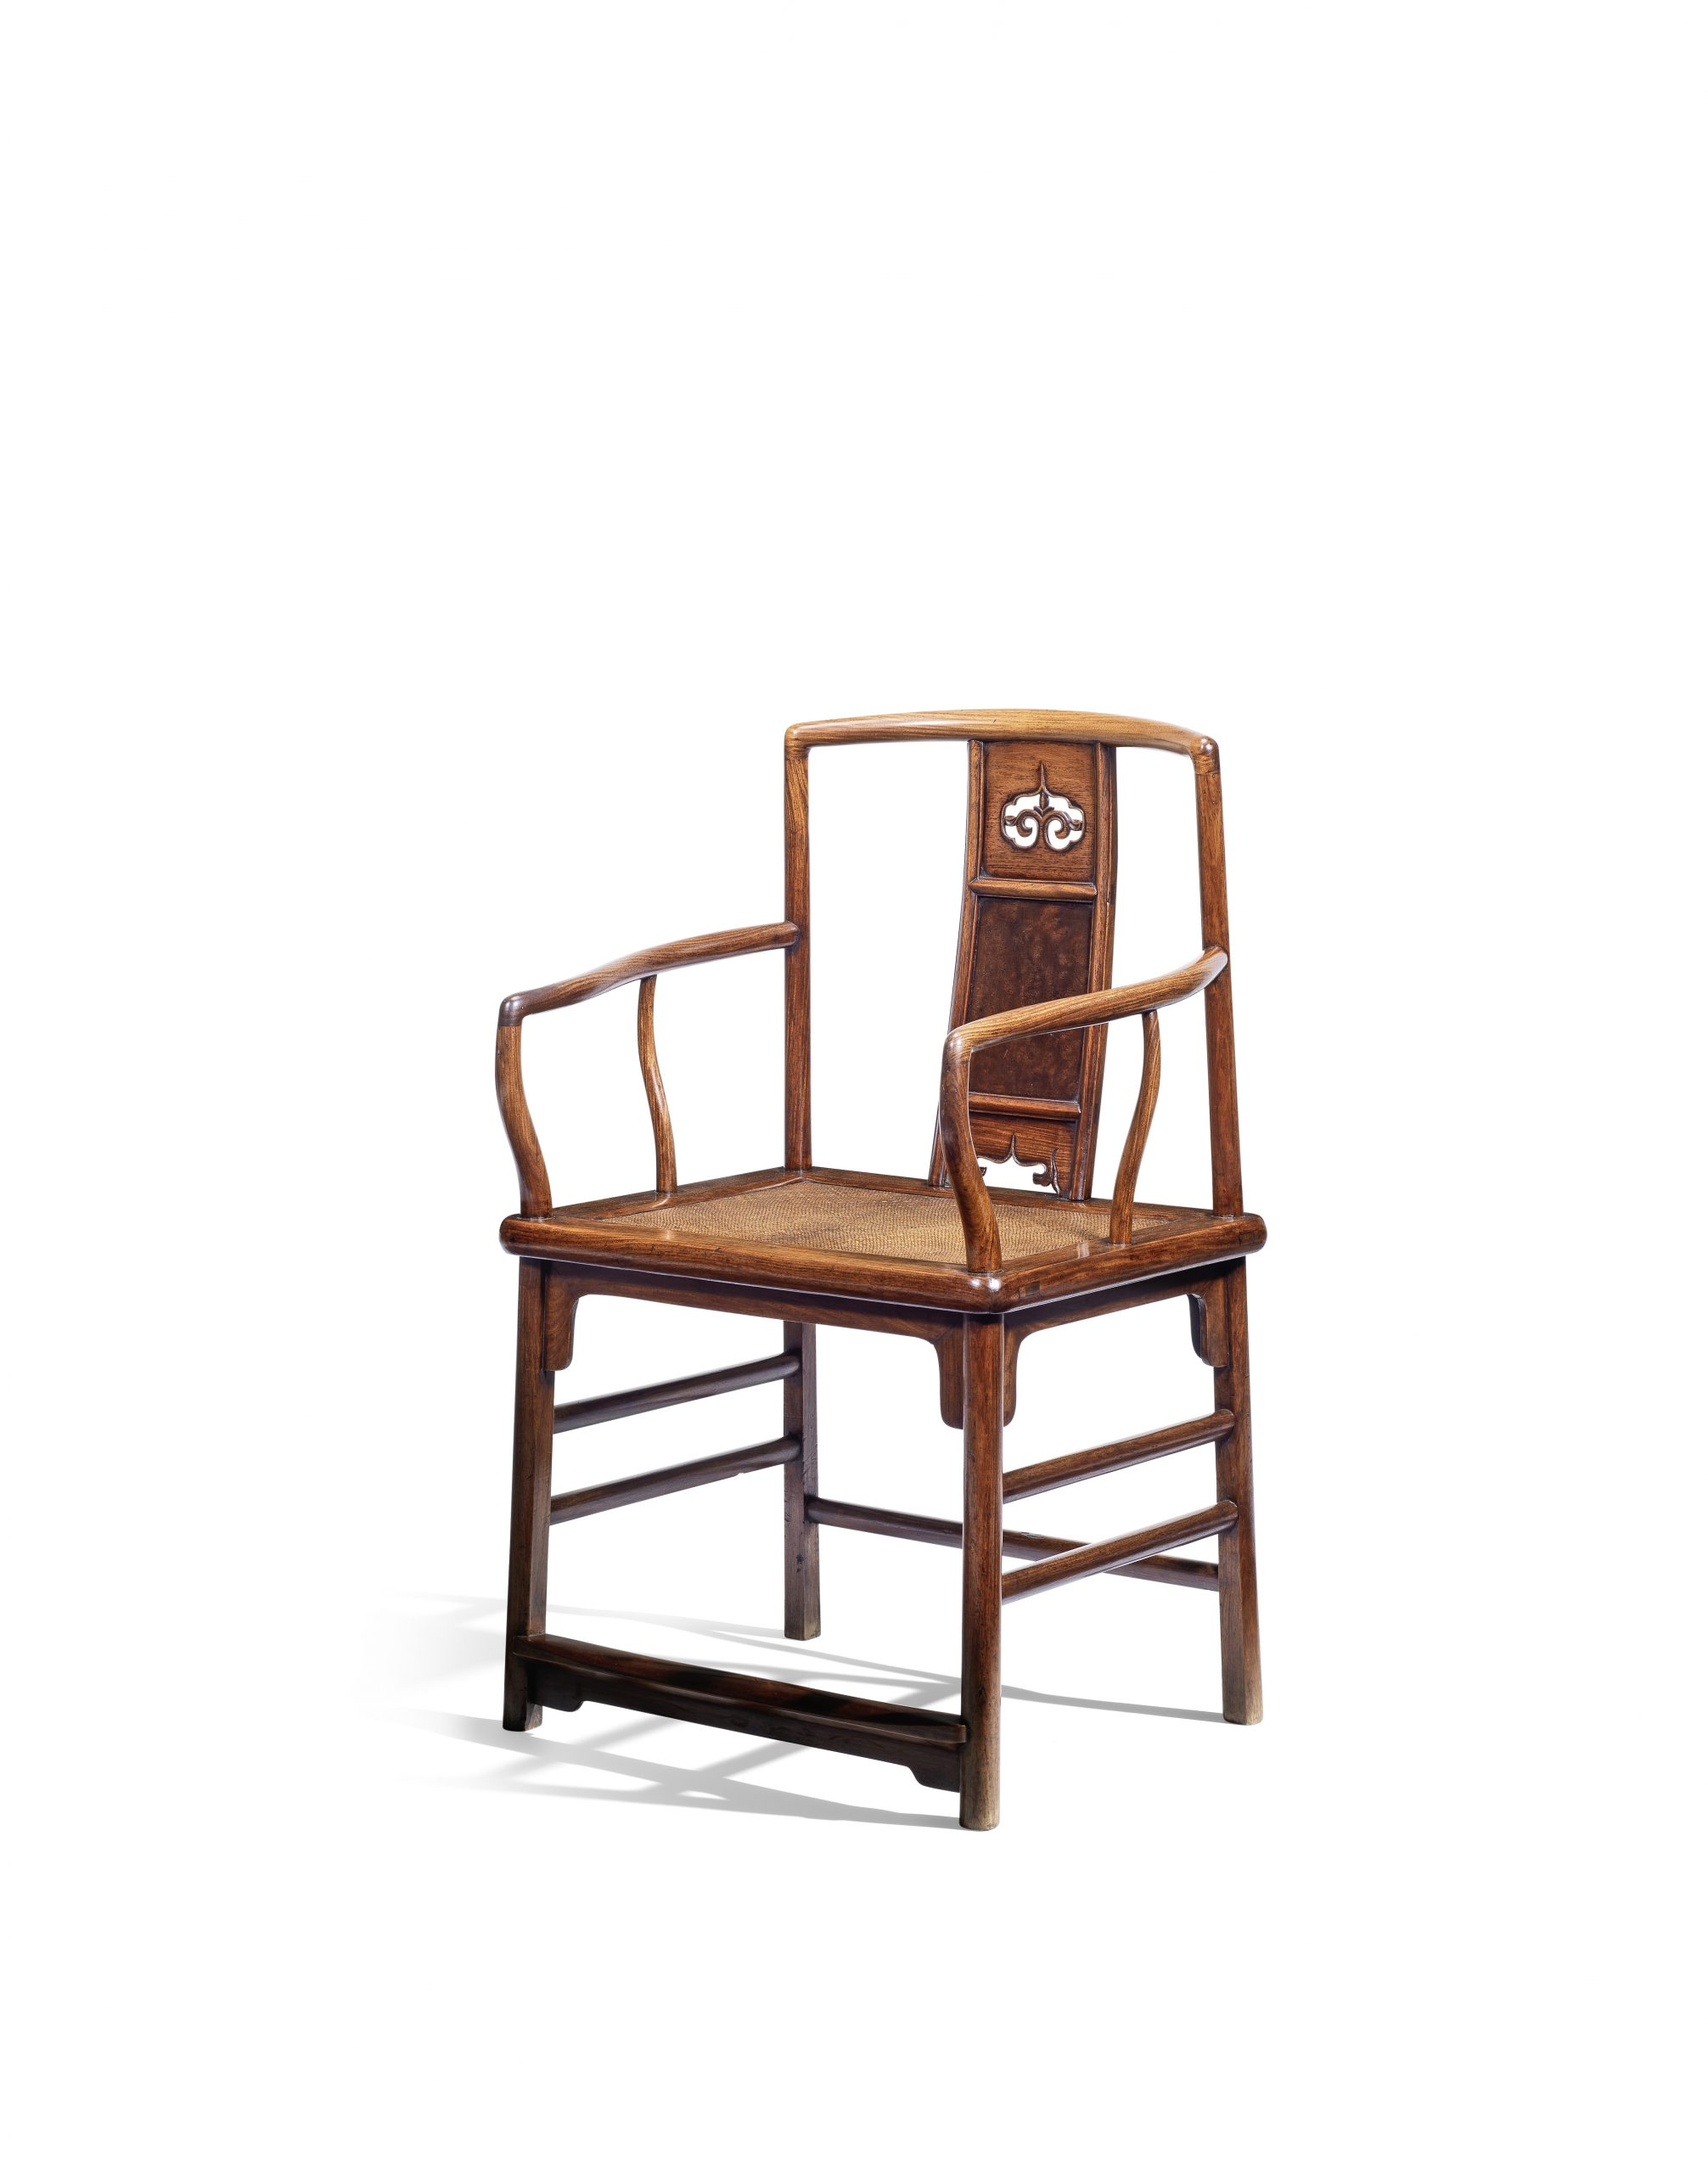 An extremely rare huanghuali low-back continuous yokeback armchair, nanguanmaoyi, 17th century - The H Collection.